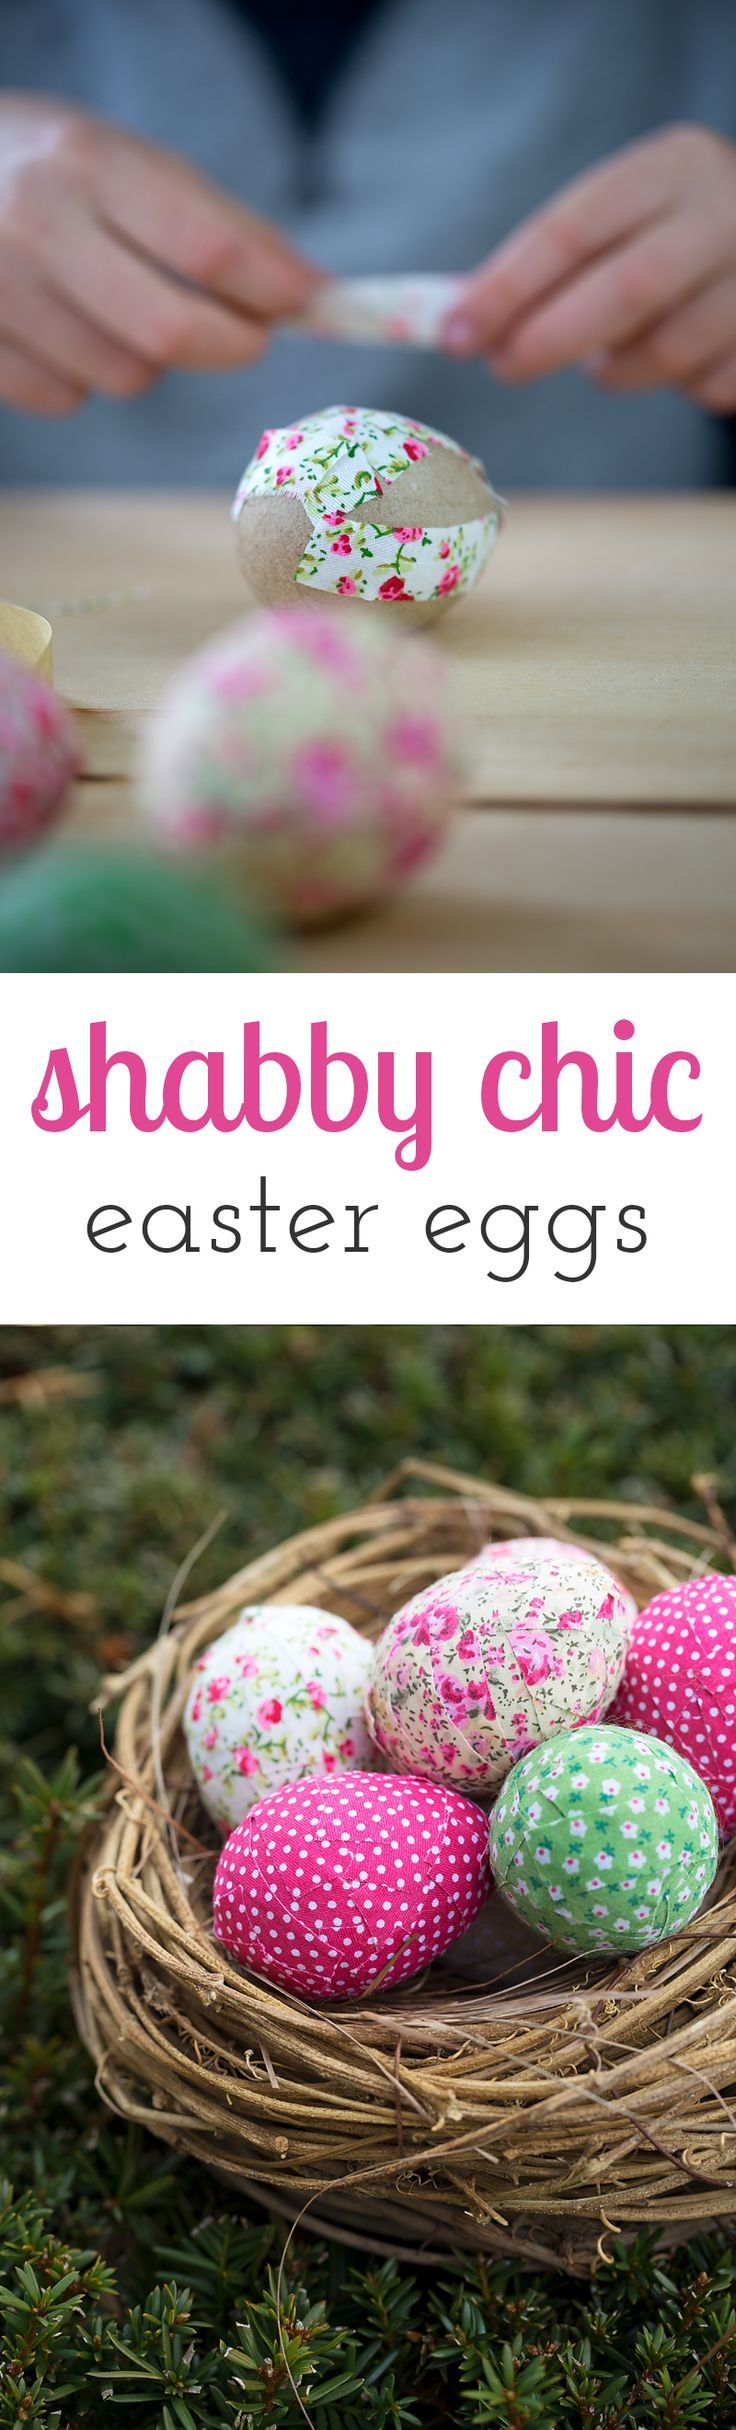 Outdoor easter decorations pinterest - Learn A Simple Trick For Creating Colorful Shabby Chic Inspired Easter Eggs For Your Home